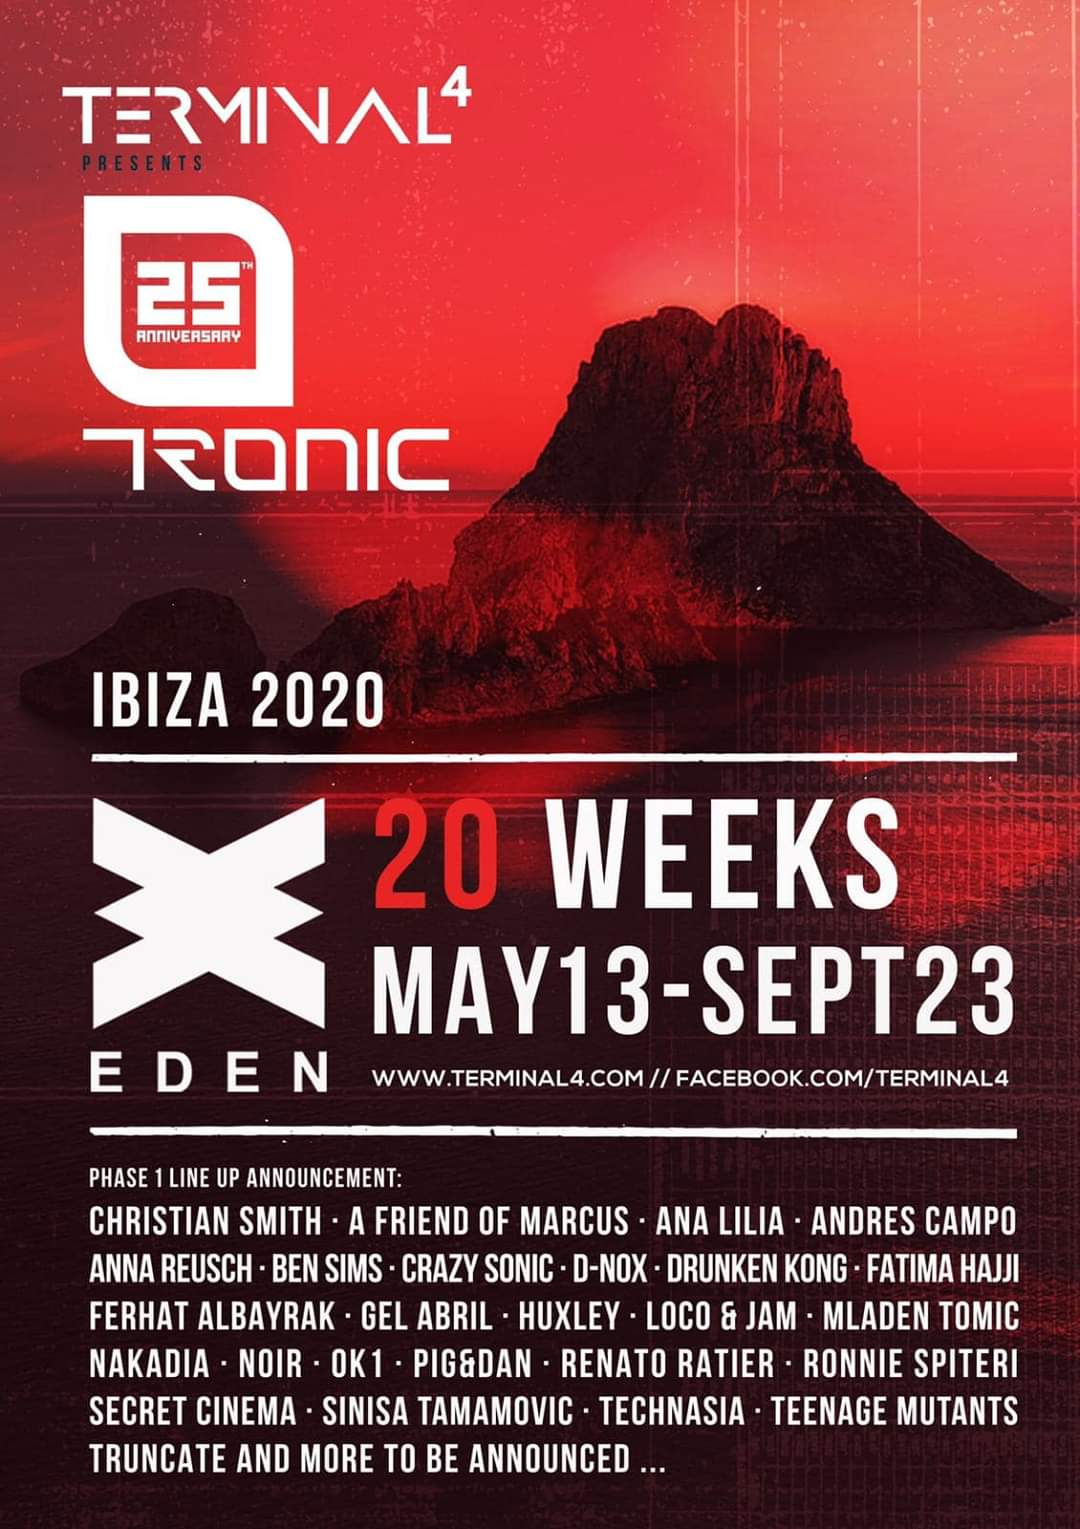 Terminal 4 presents Tronic Eden 2020